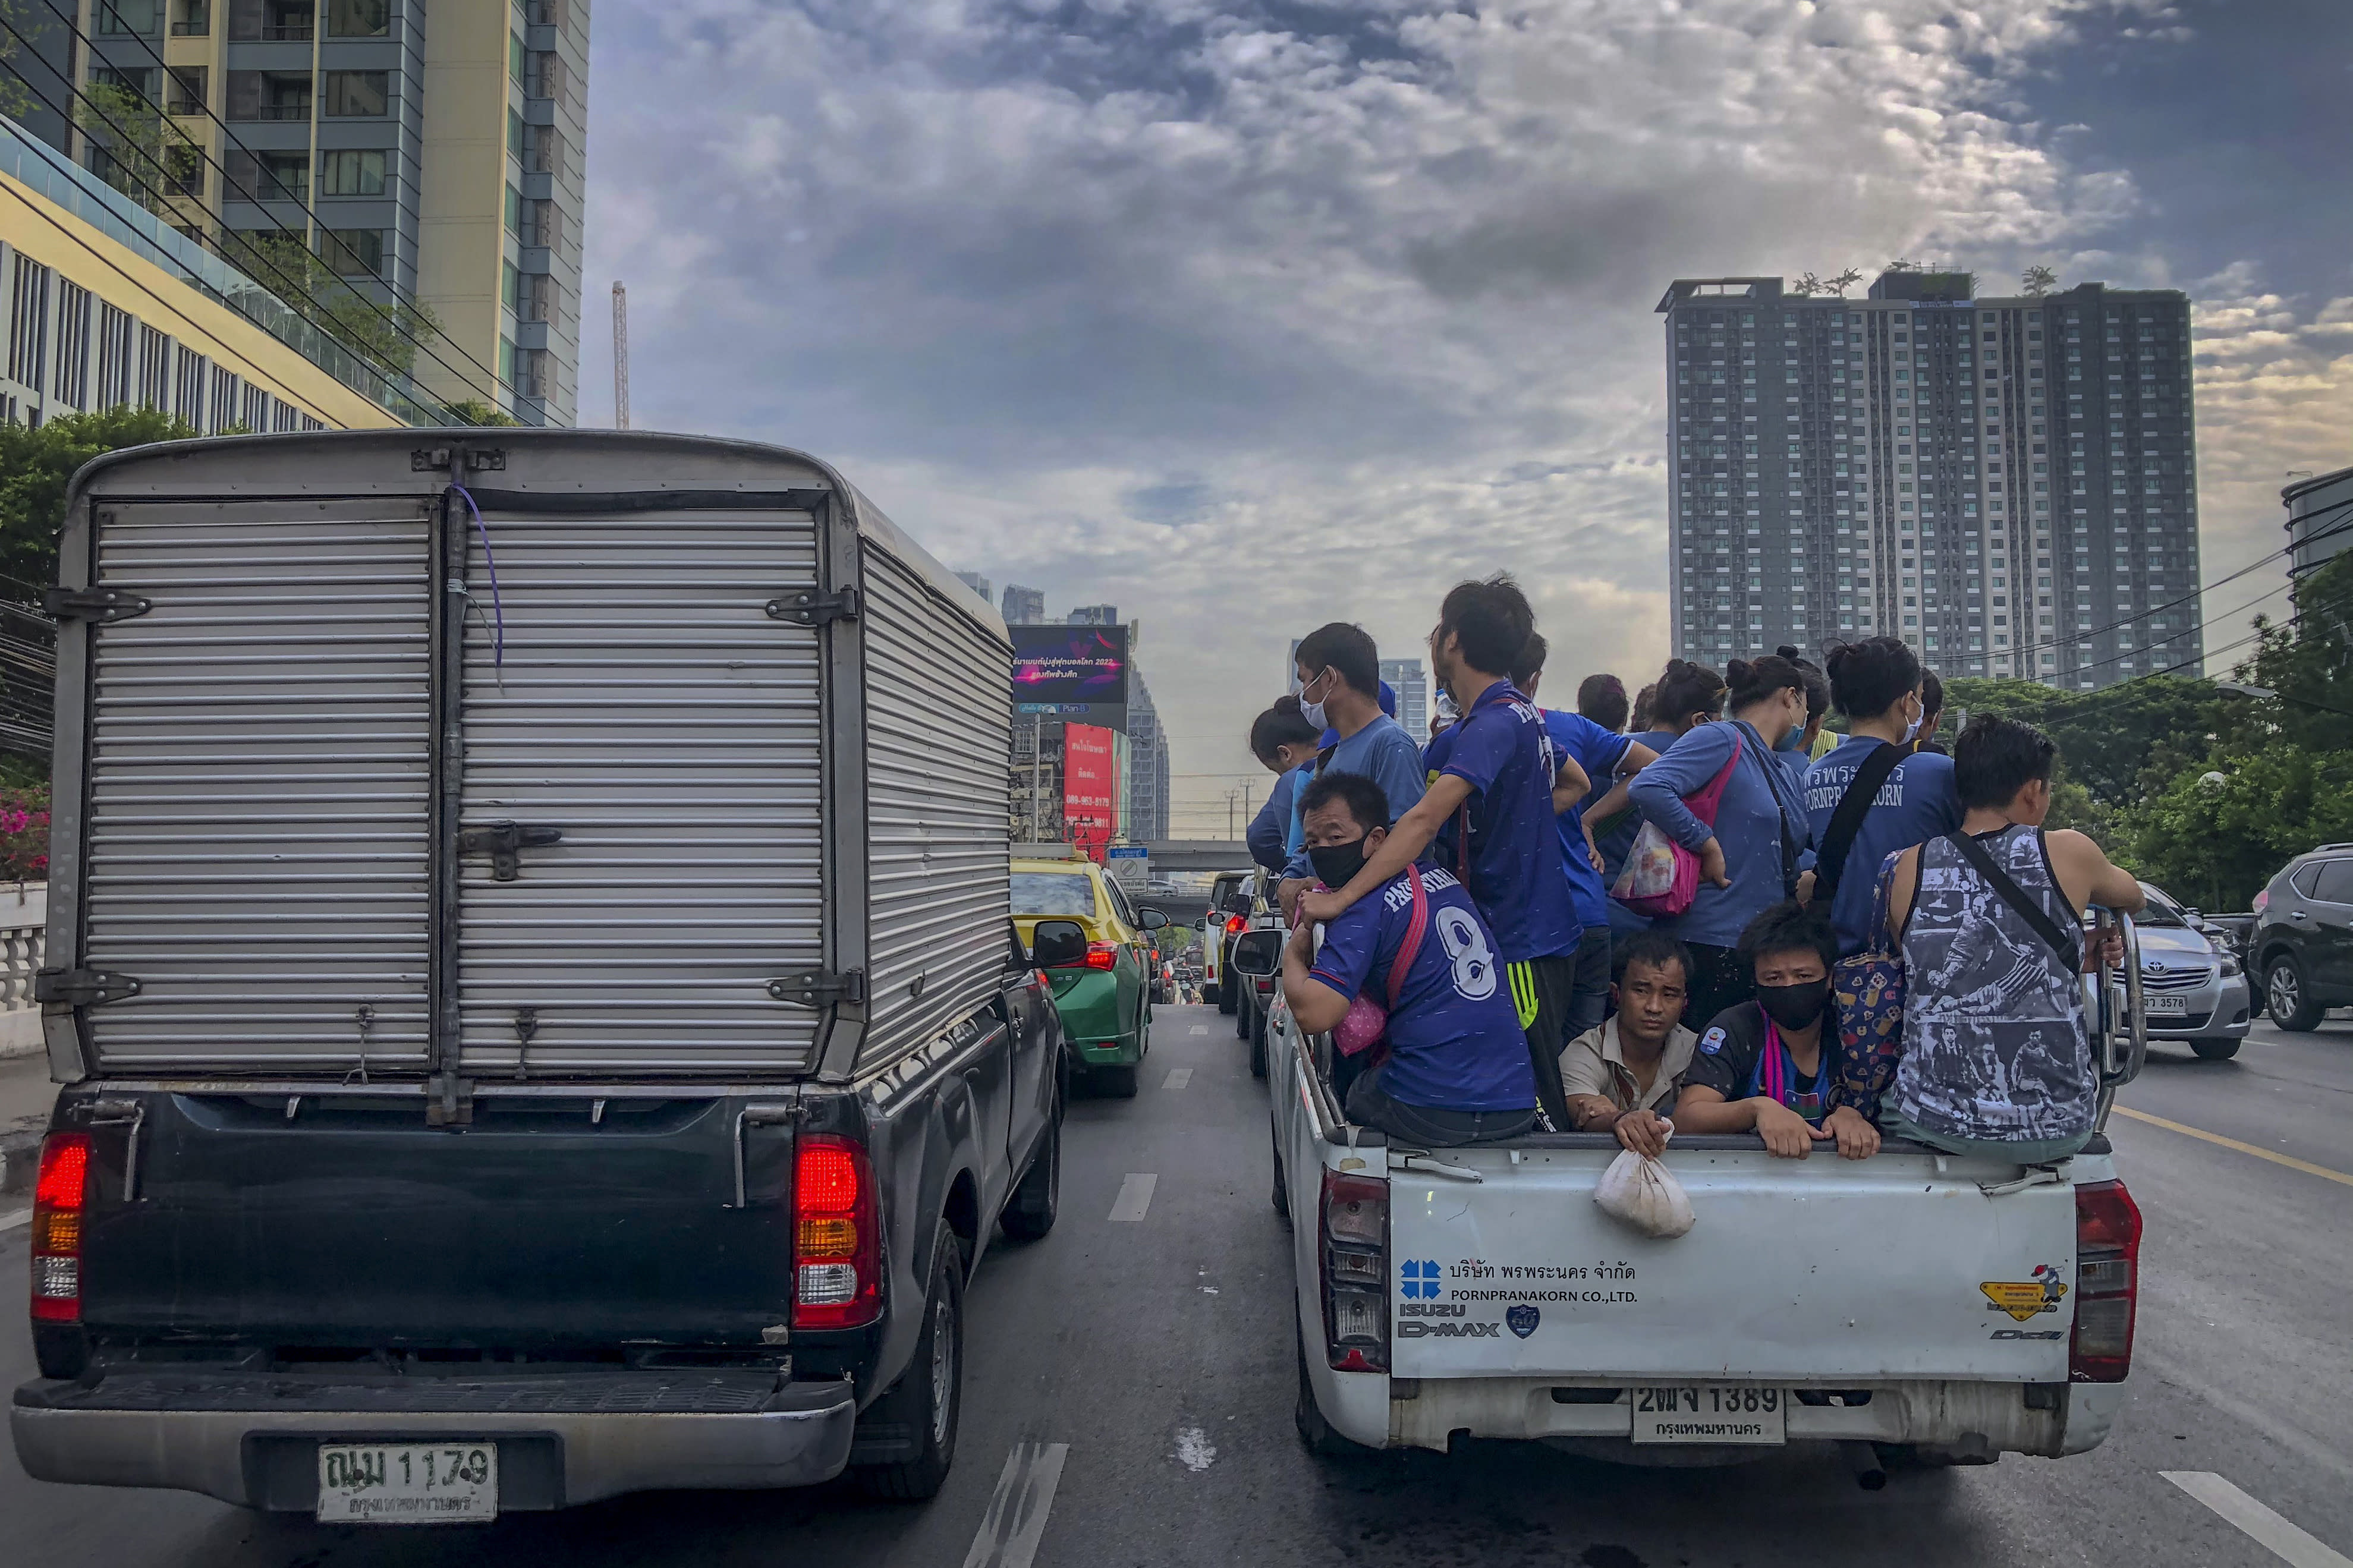 Migrant construction workers, some wearing face masks, travel in the back of a crew cab in Bangkok, Thailand, Monday, May 25, 2020. Thai government continue to ease restrictions related to running business in capital Bangkok that were imposed weeks ago to combat the spread of COVID-19. (AP Photo/Gemunu Amarasinghe)